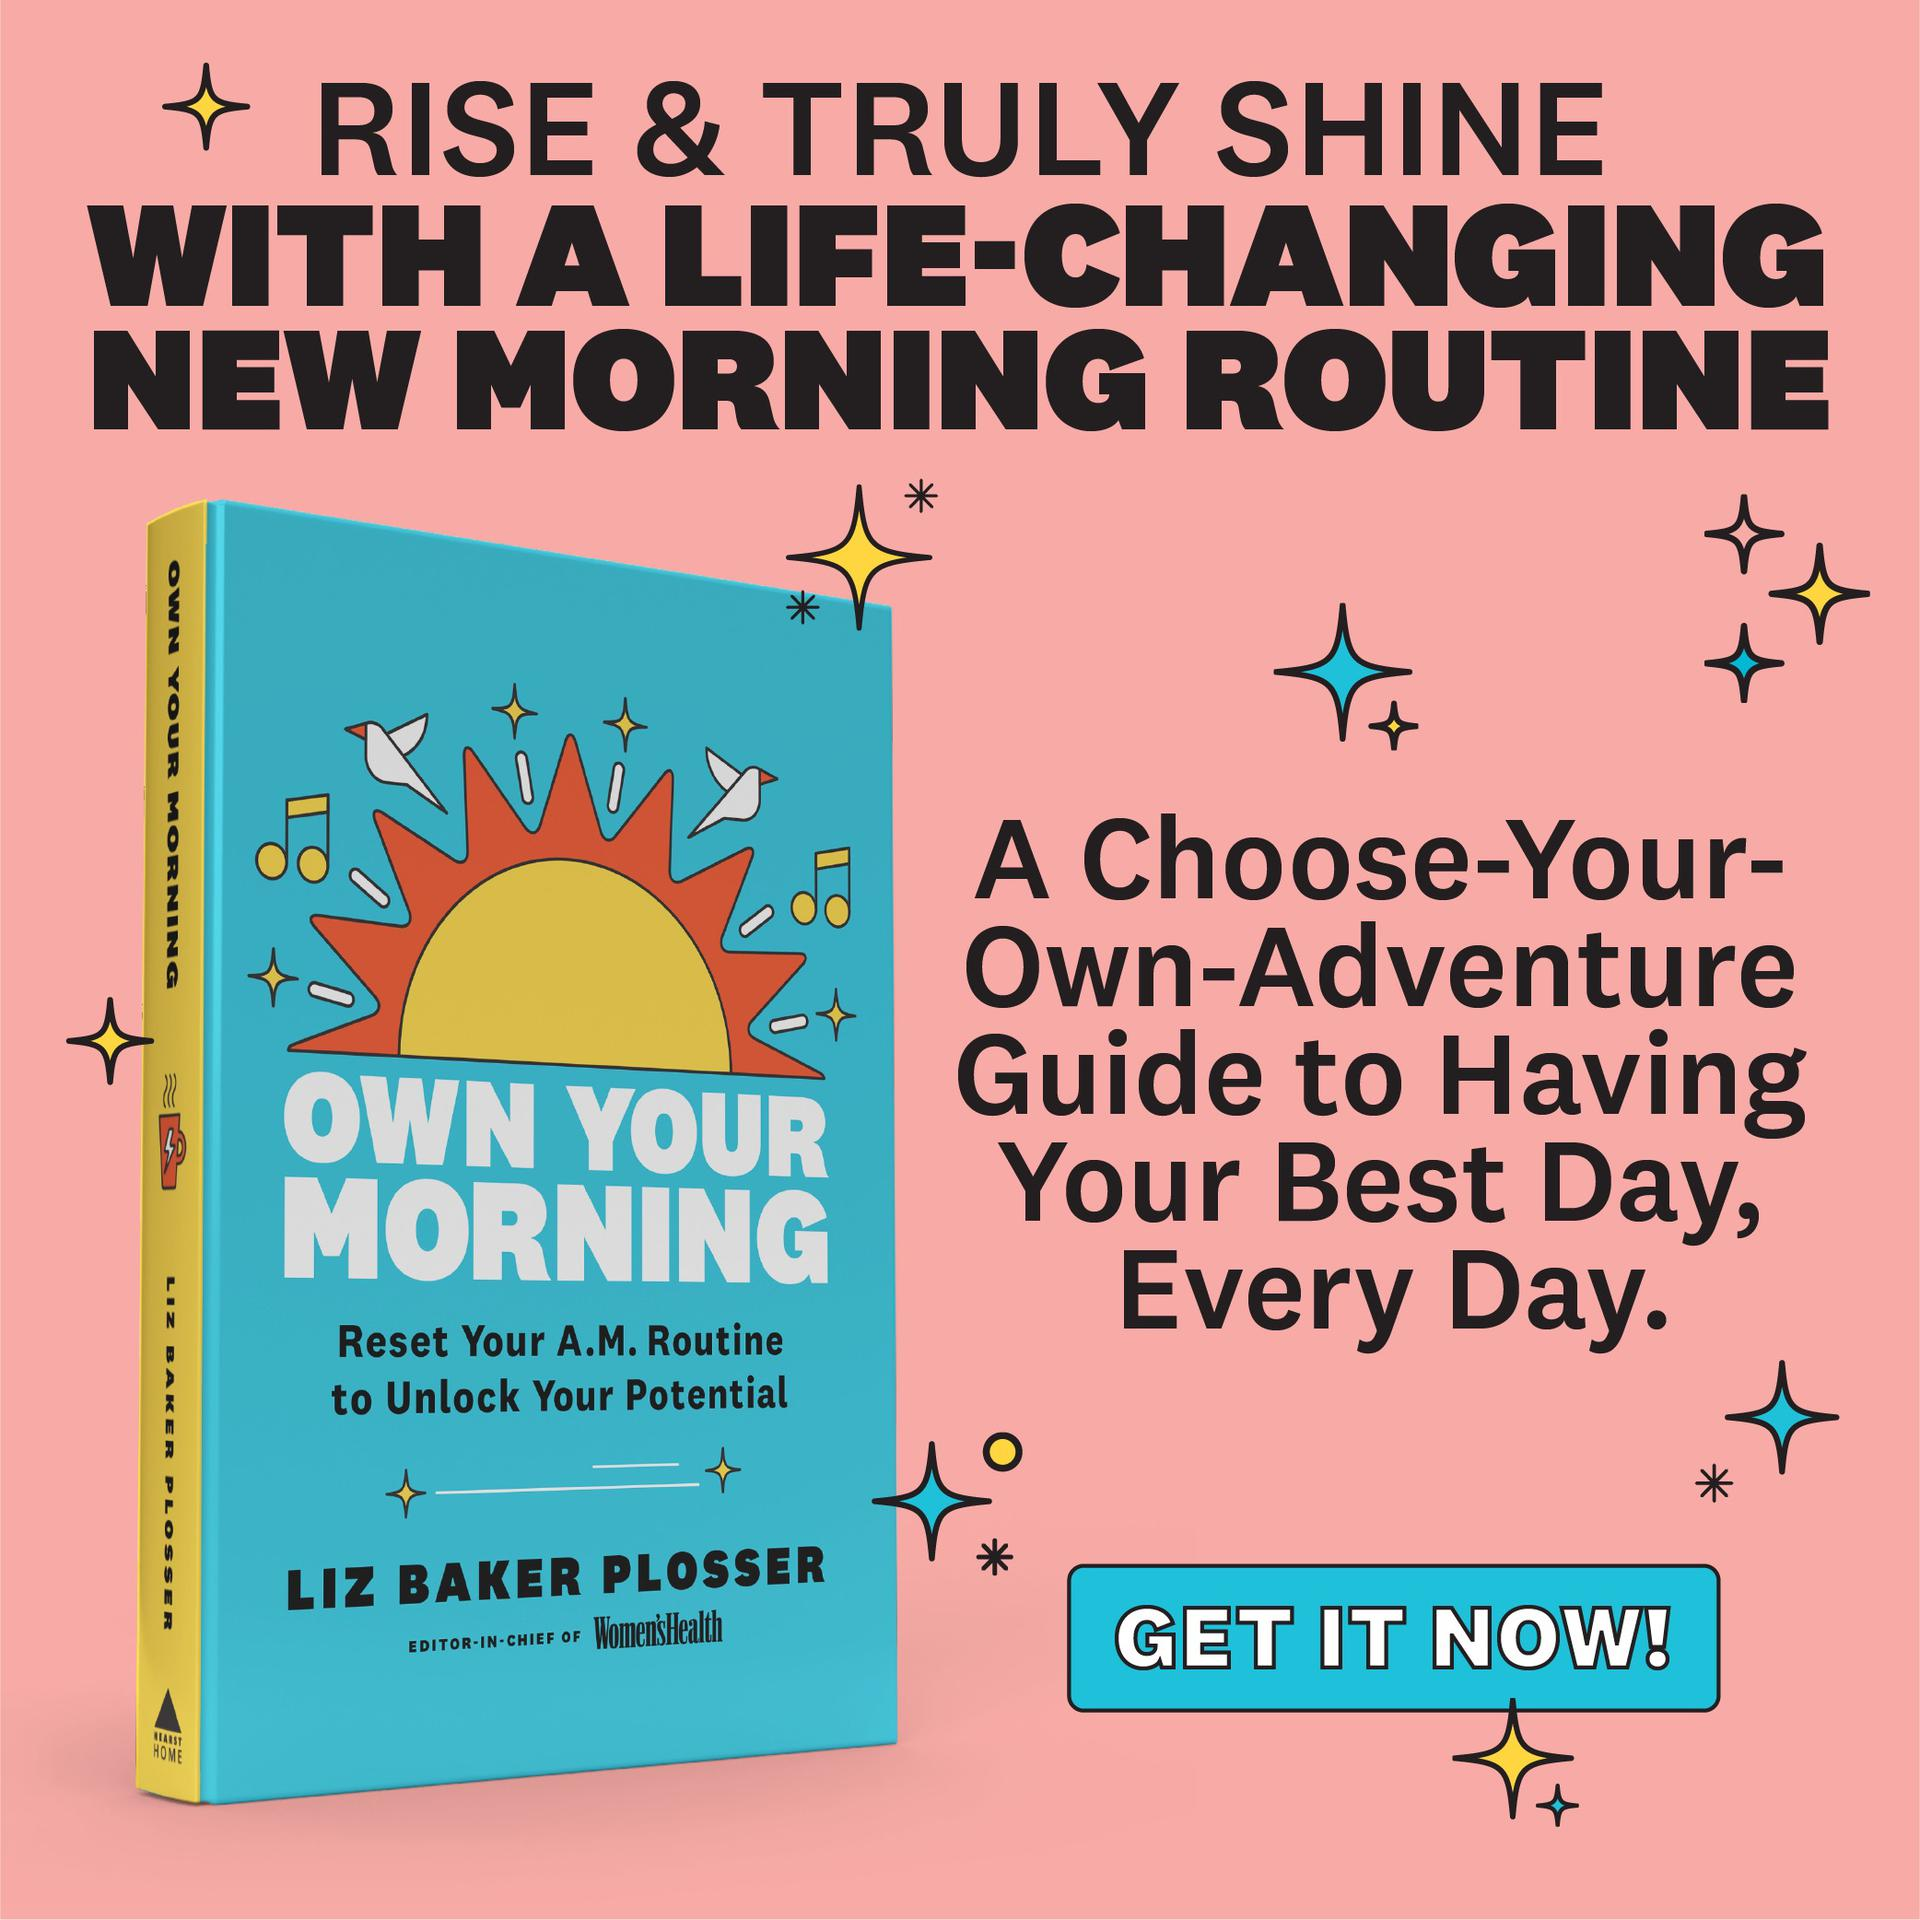 Rise and truly shine with a life-changing new morning routine. A choose-your-own-adventure guide to having your best day, every day.